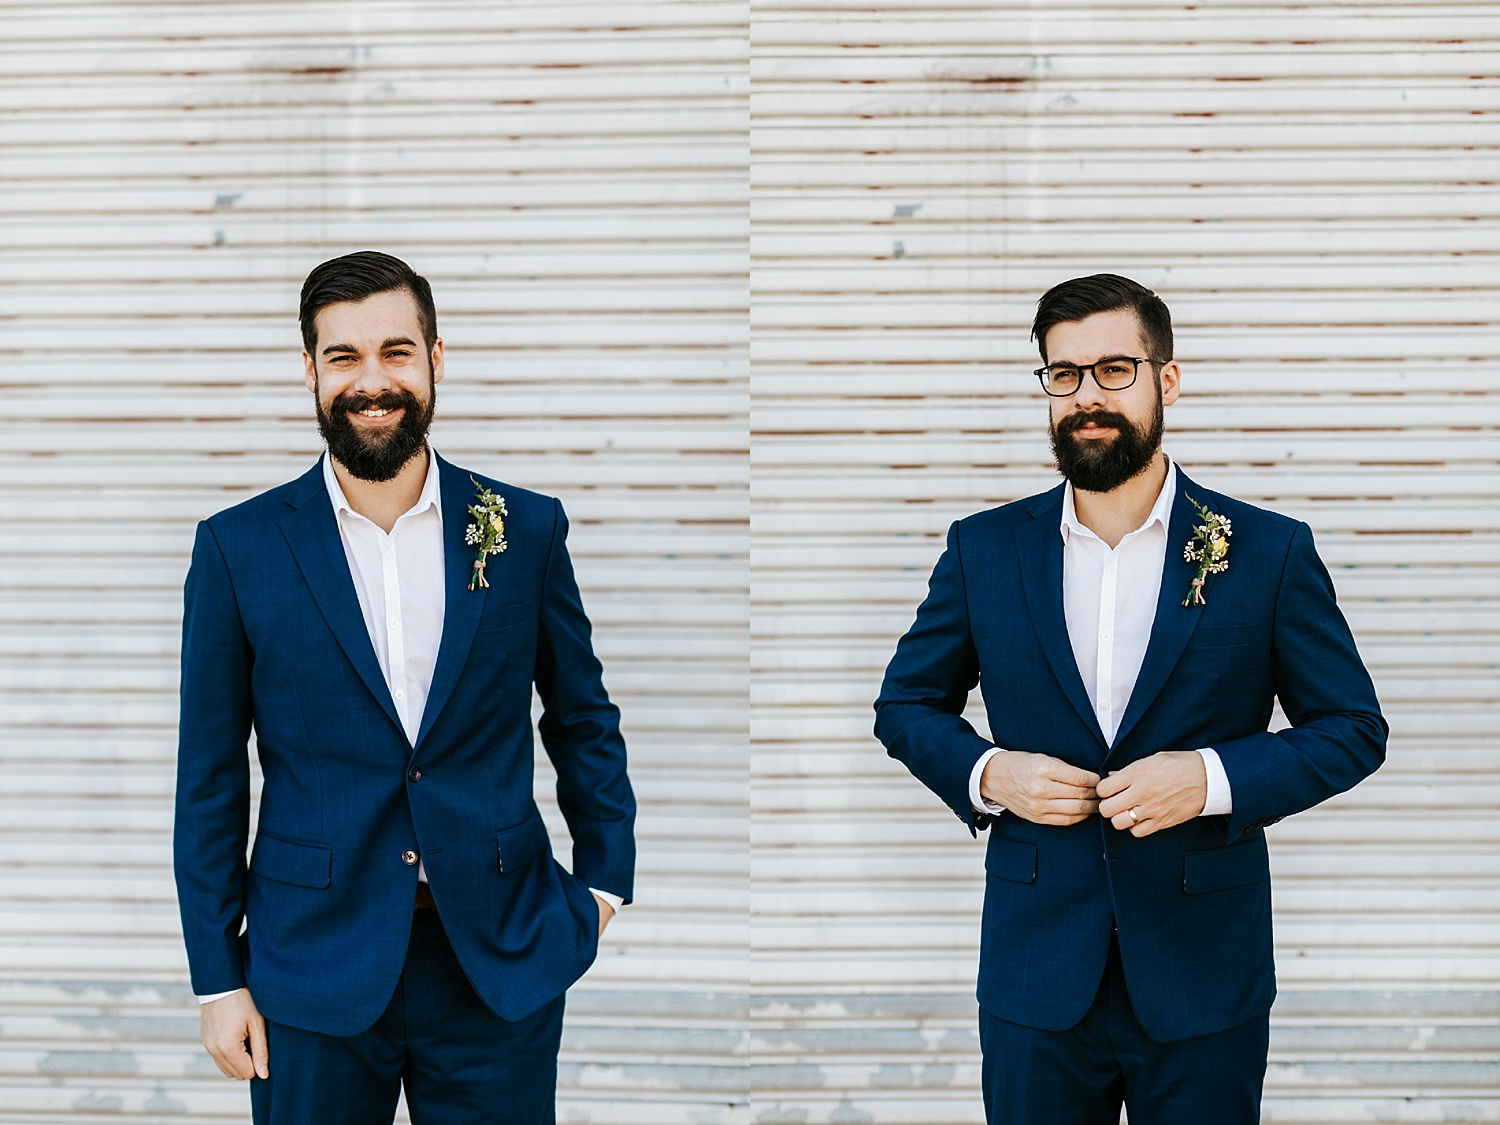 Groom portraits in fishtown, philadelphia